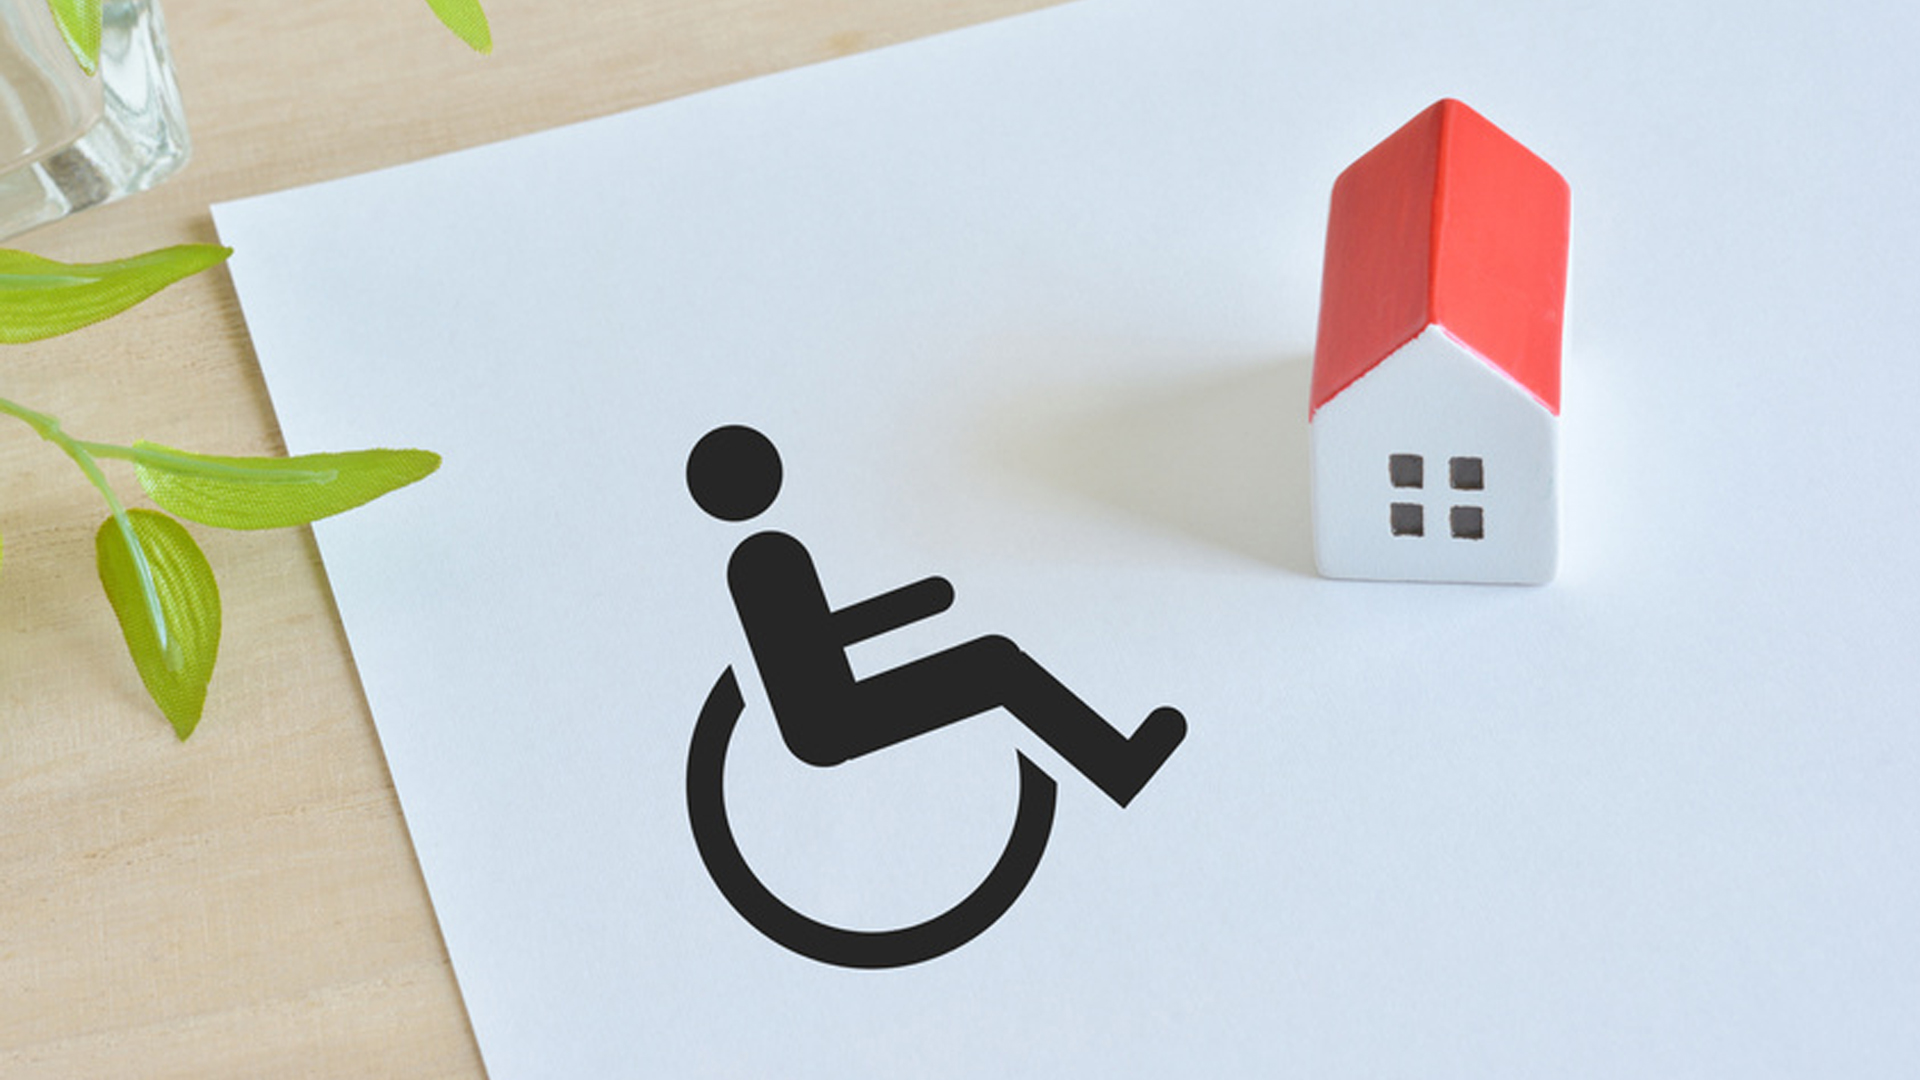 RULES FOR LEASING TO DISABLED TENANTS